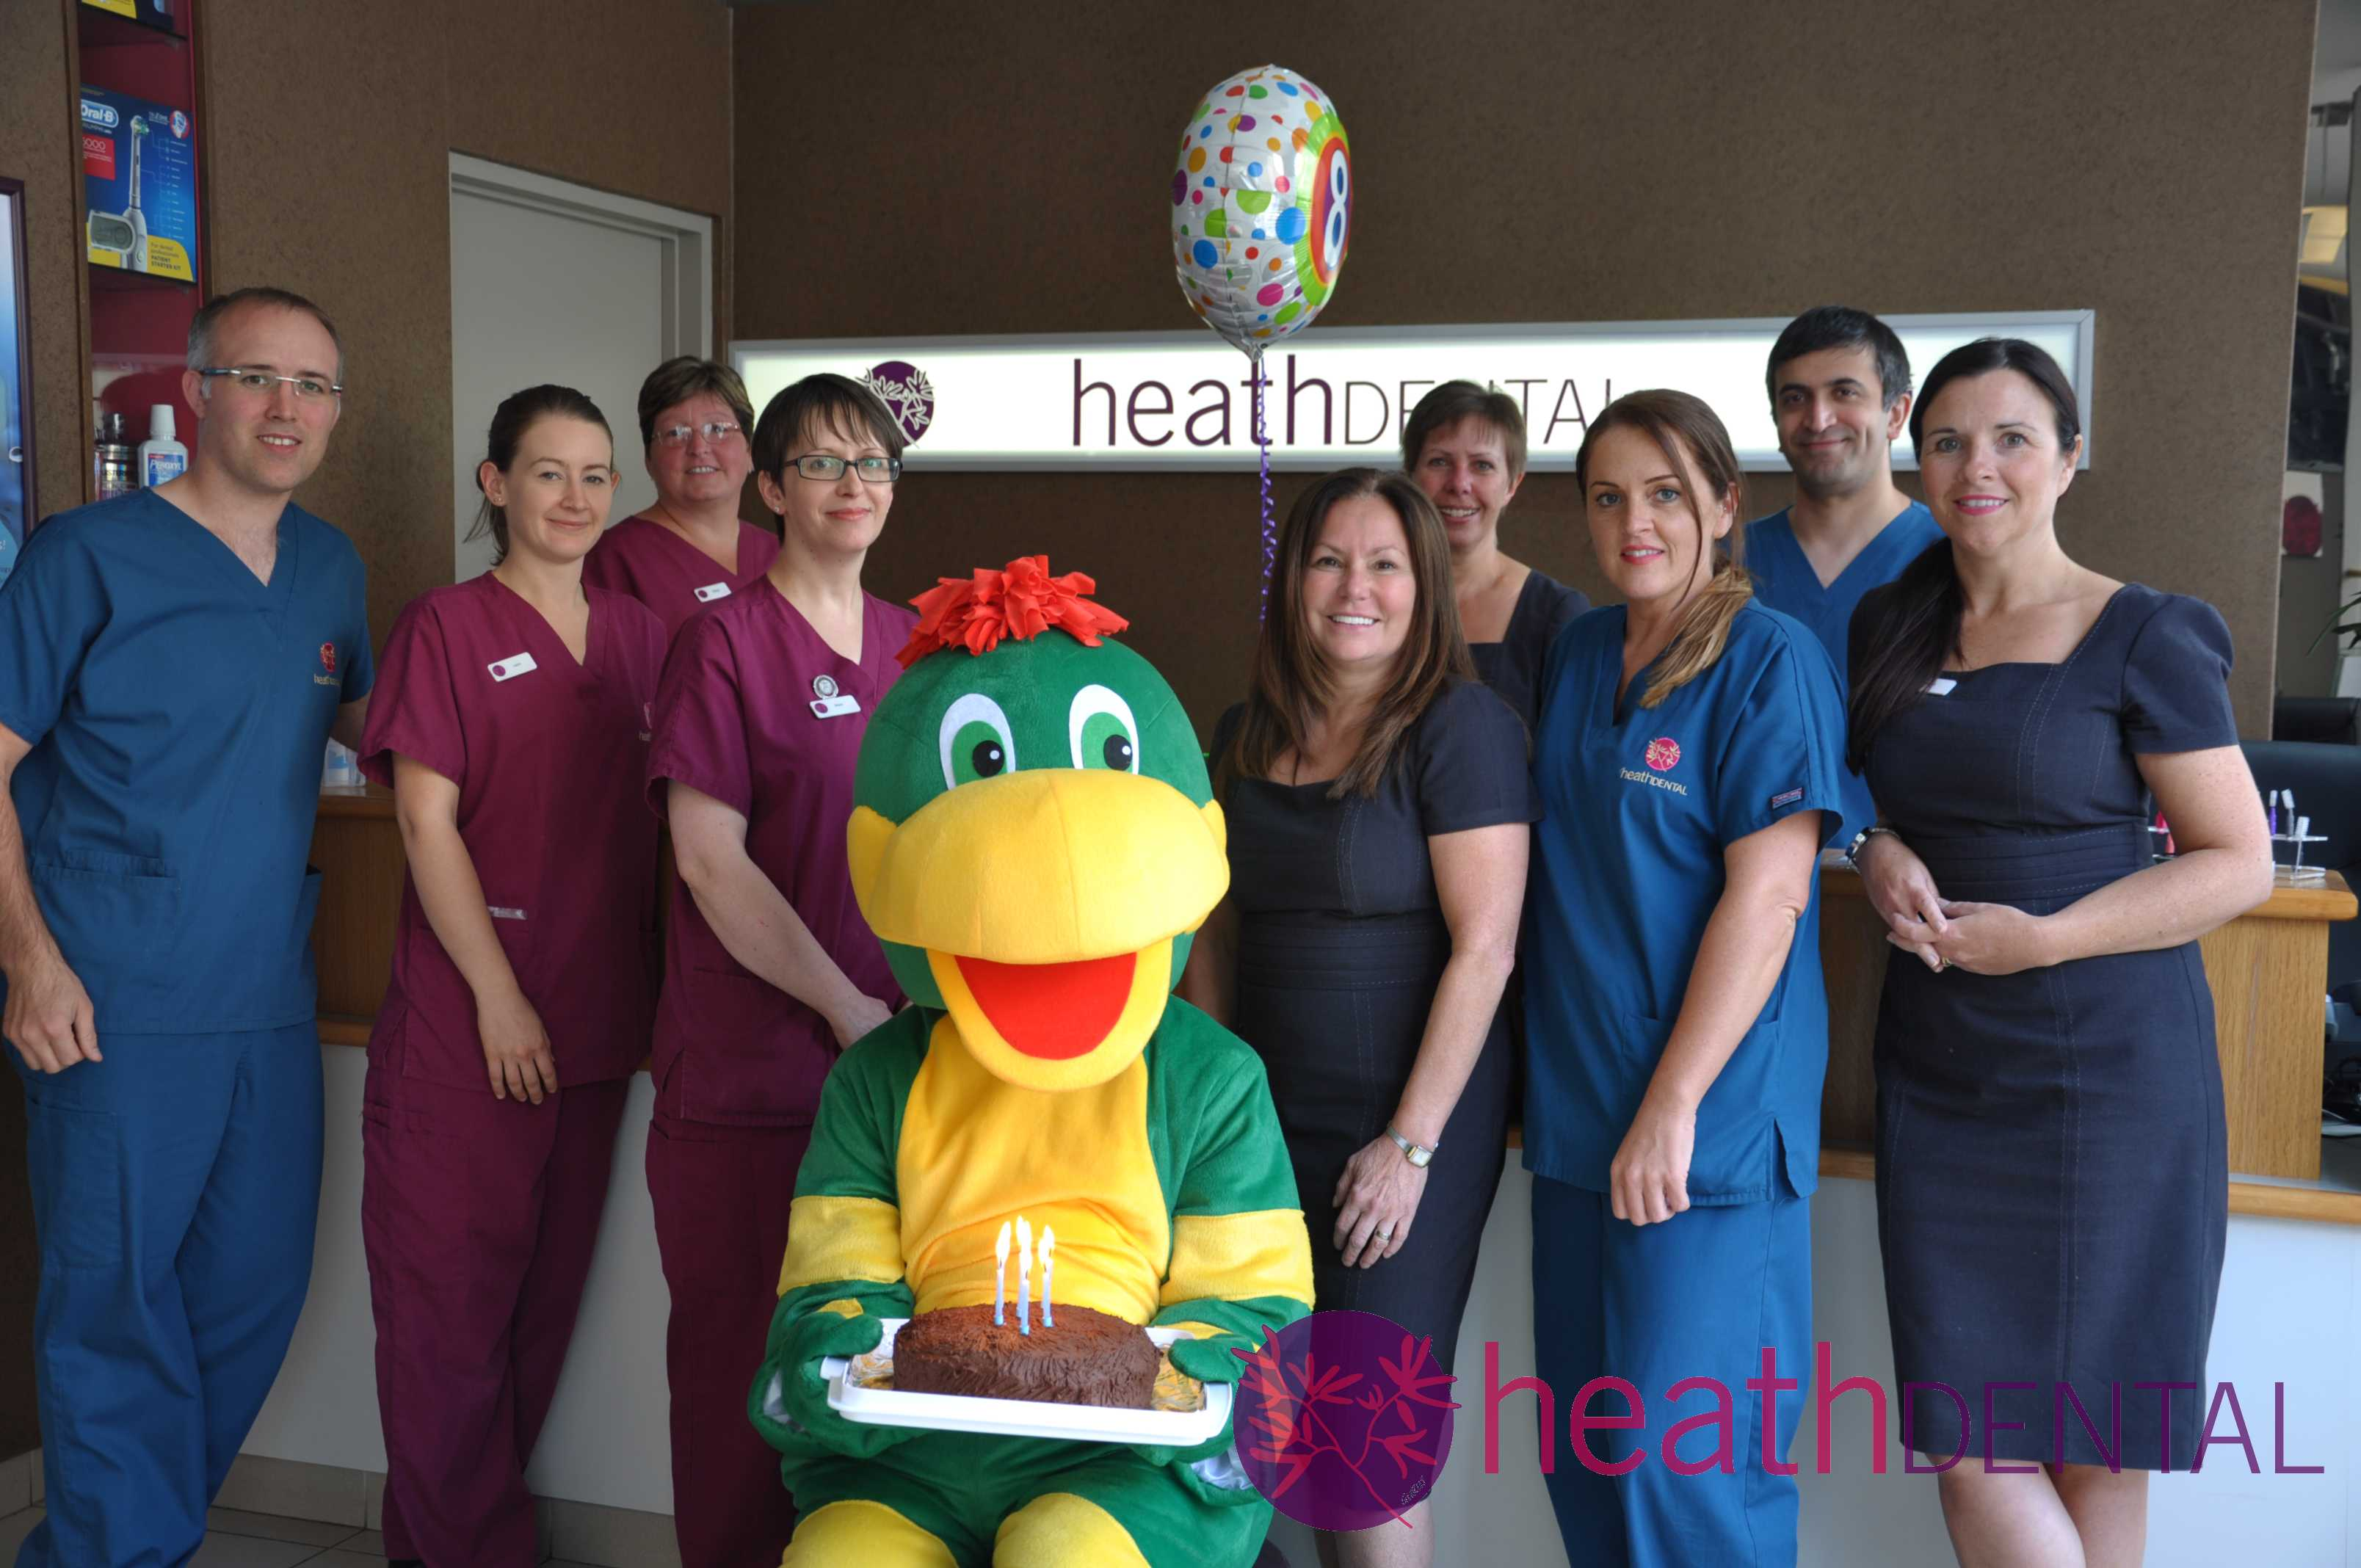 Happy 8th Birthday Heath Dental